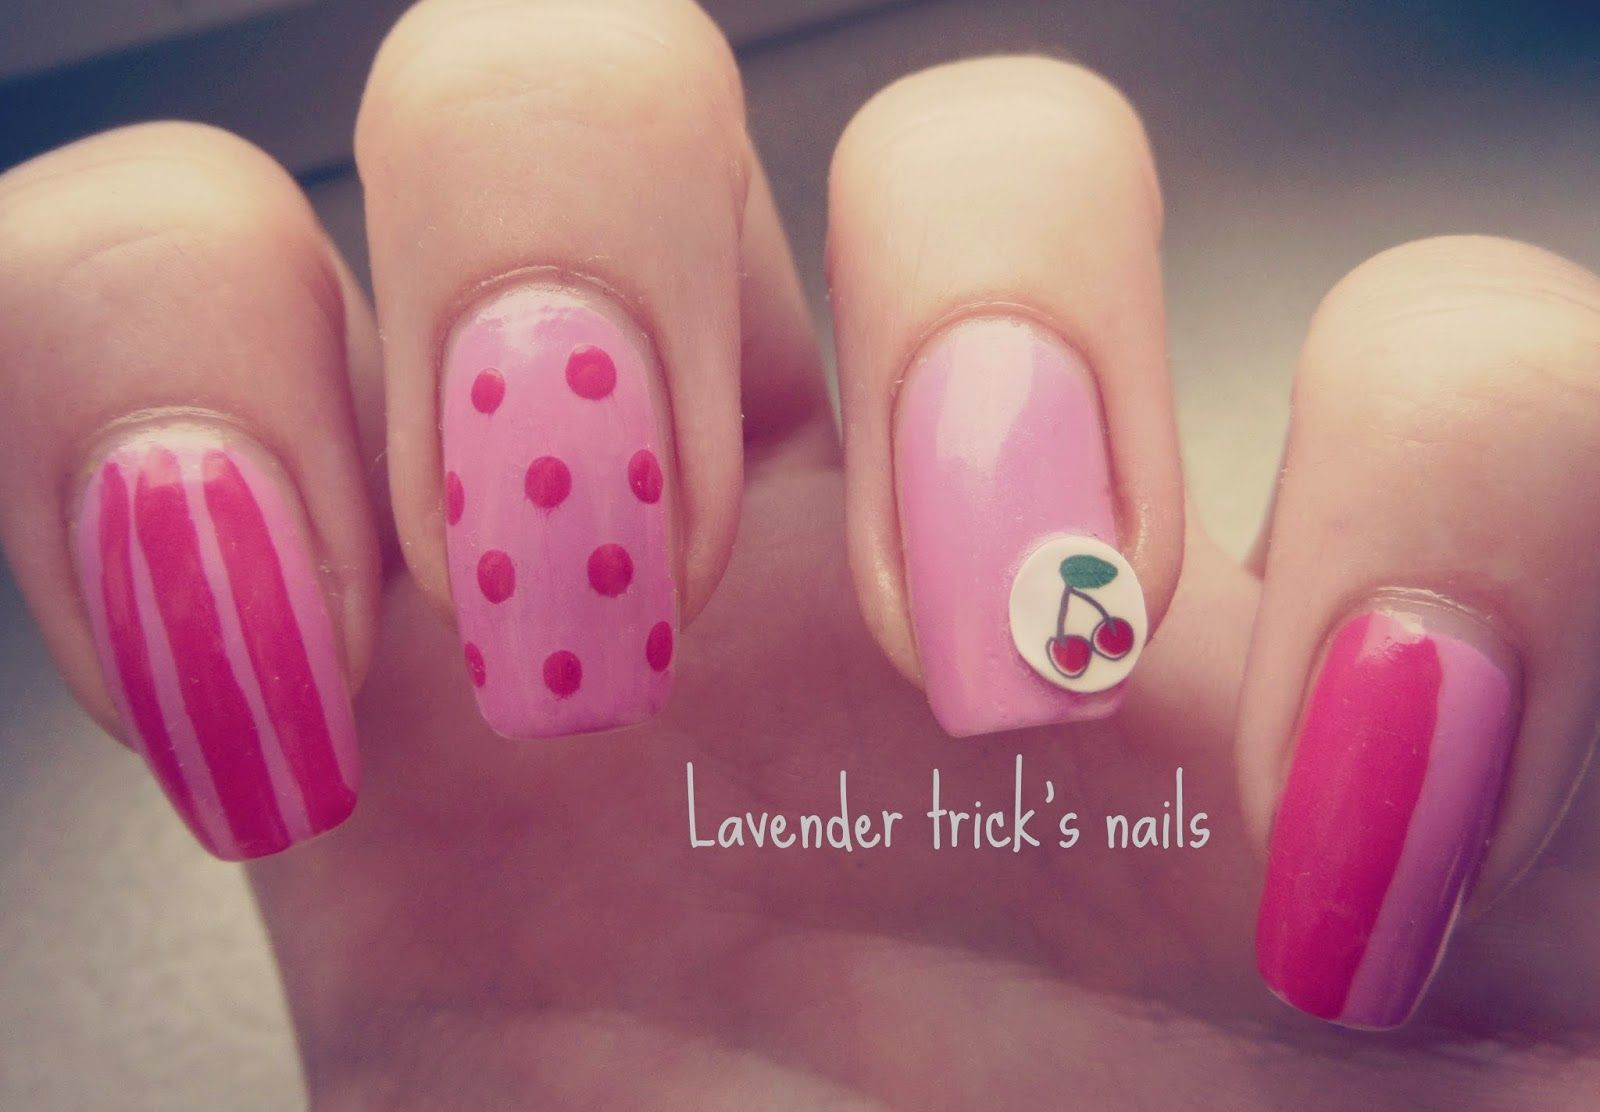 Lavender trick's nails: Dots, stripes and cherry polymer clay